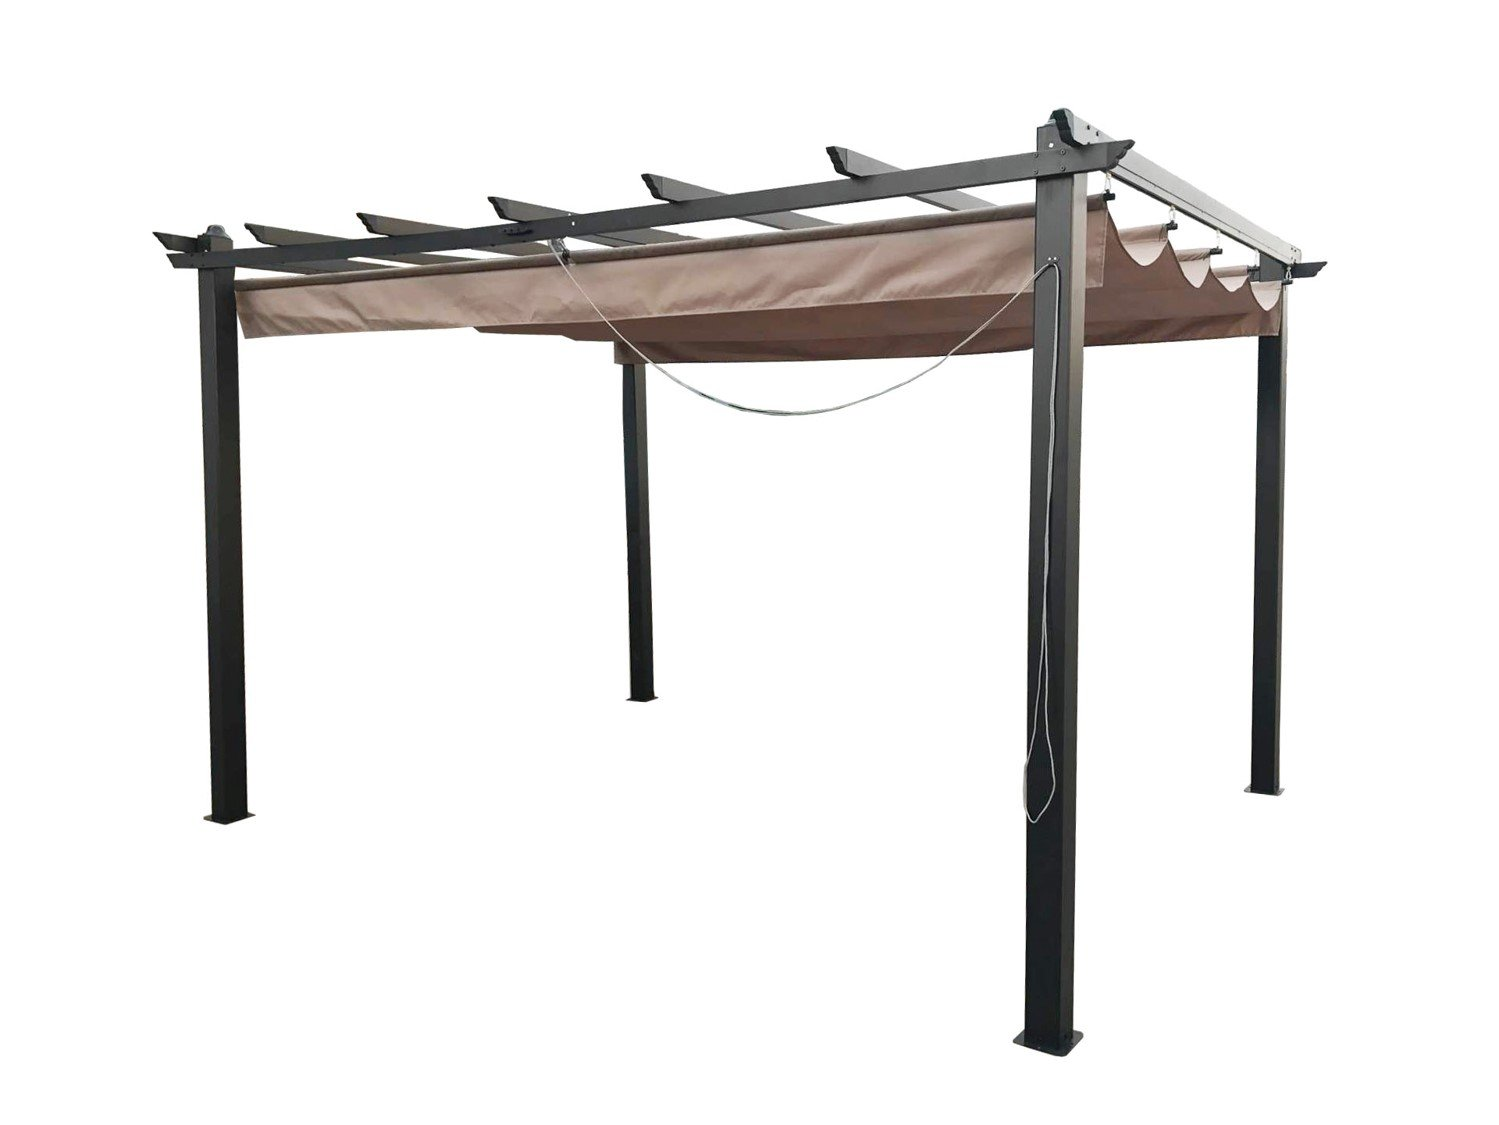 retractable roof gazebo pergola shade systems. Black Bedroom Furniture Sets. Home Design Ideas